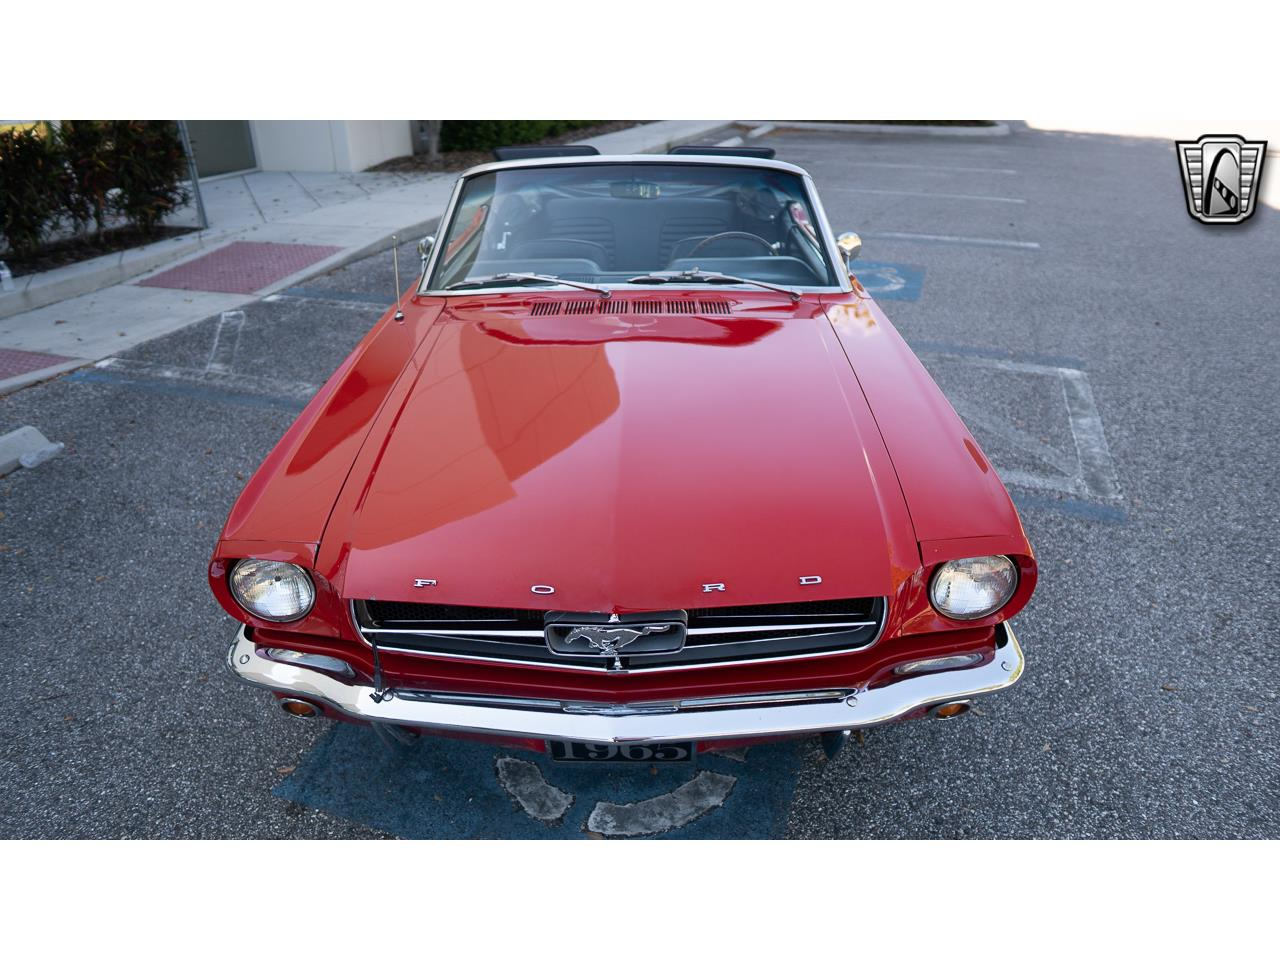 Ford Mustang V8 1965 prix tout compris 1965